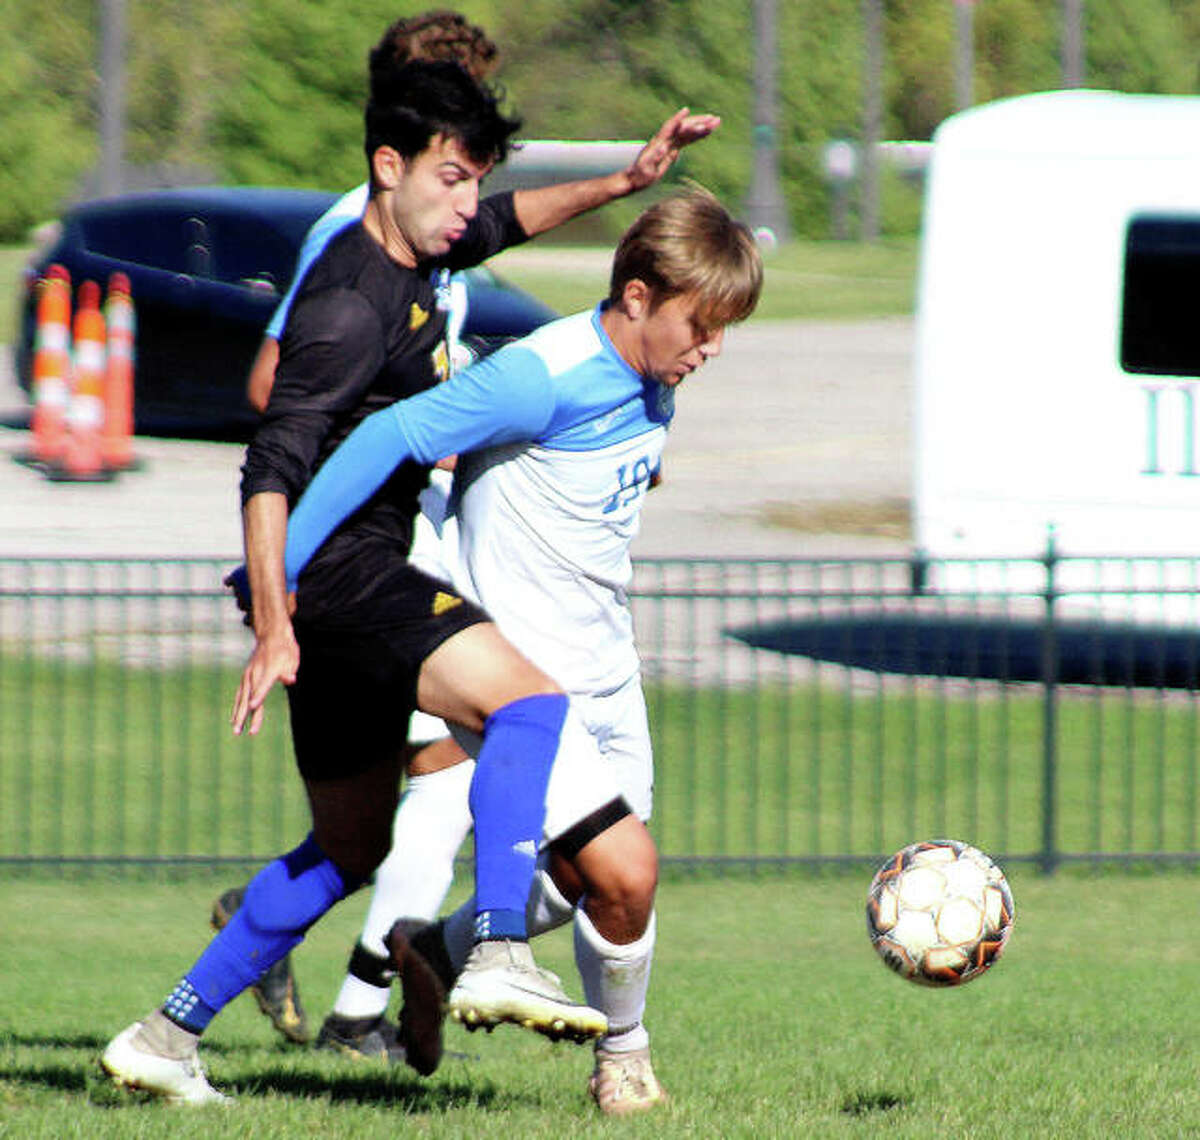 Victor Strandahl of Lewis and Clark, right, shields the ball from Nathan Monne of Illinois Central College during Sunday's Region 24 game at Tim Rooney Stadium.